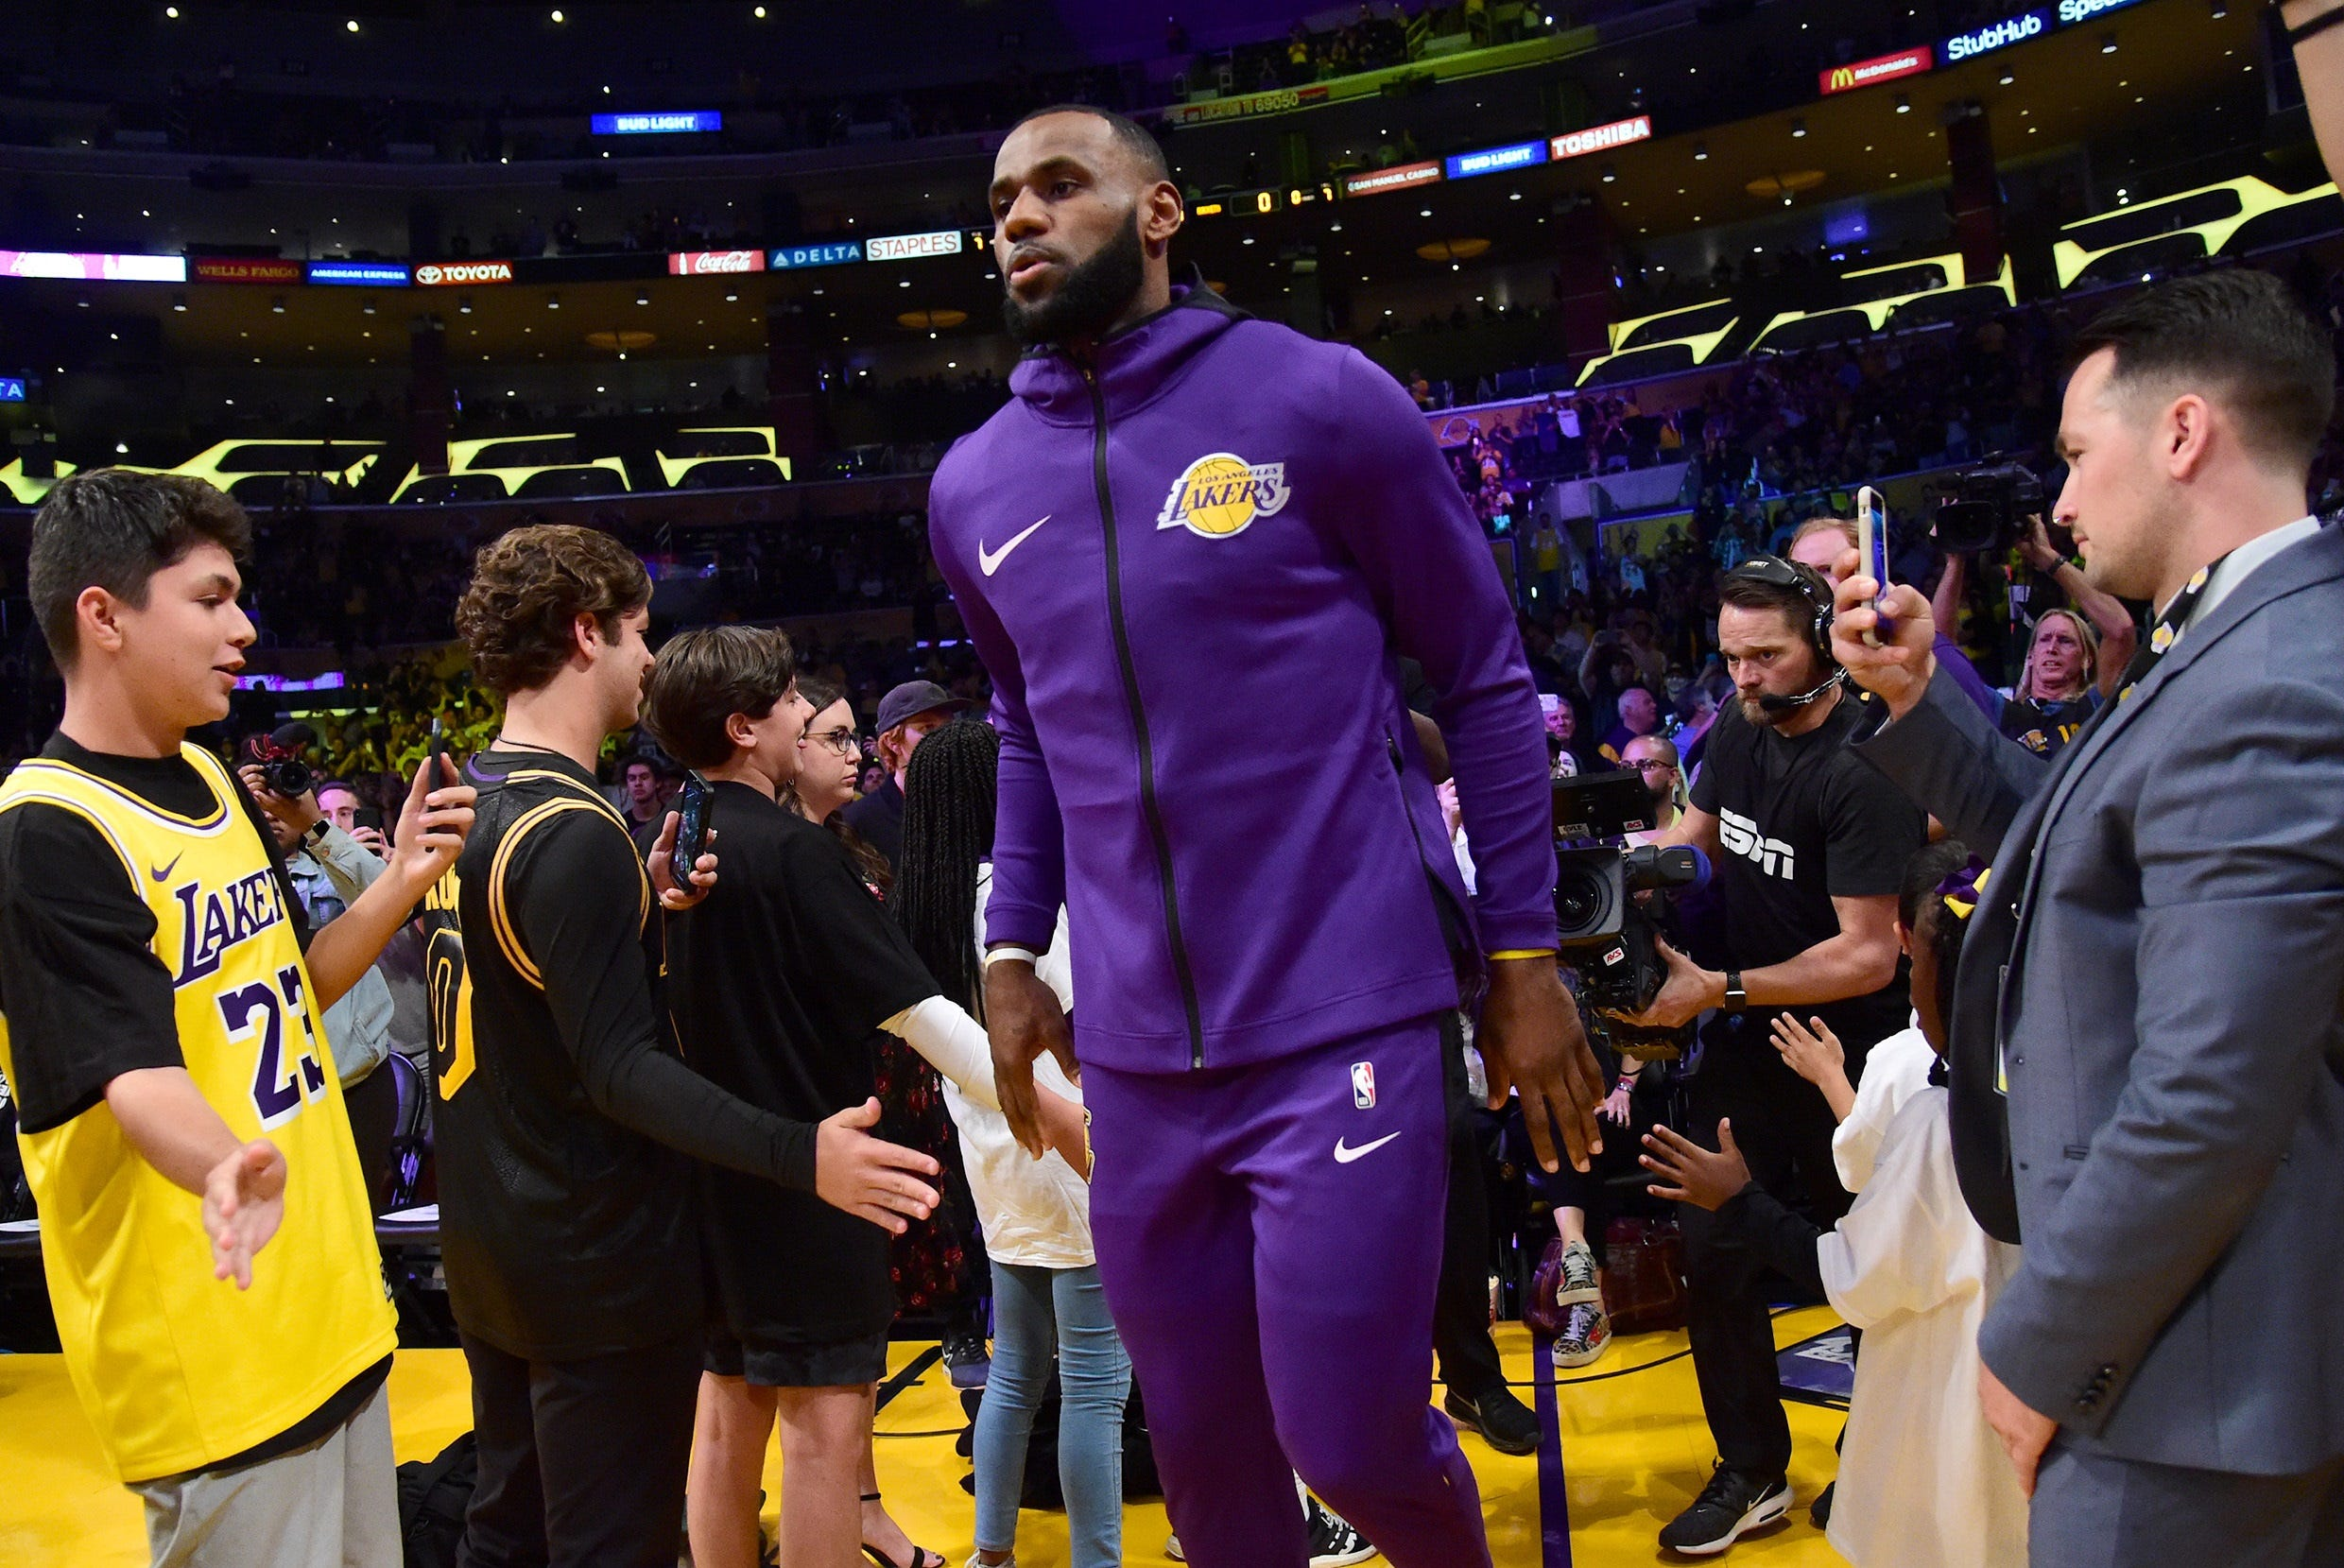 LeBron James the brightest star among stars at Lakers home debut